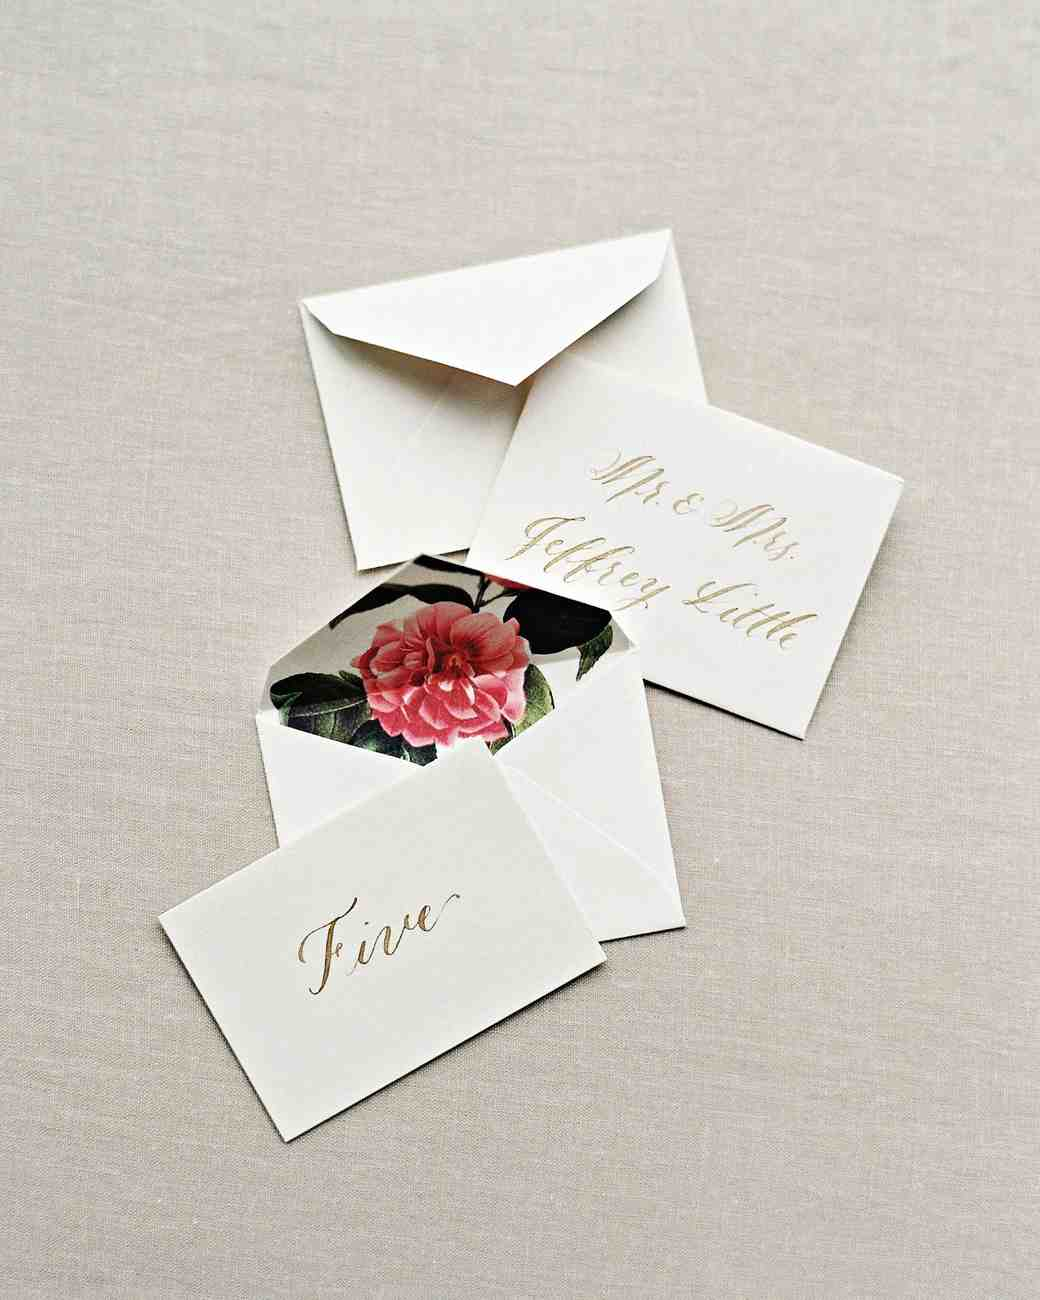 rebecca-david-wedding-new-york-escort-cards-d112241.jpg